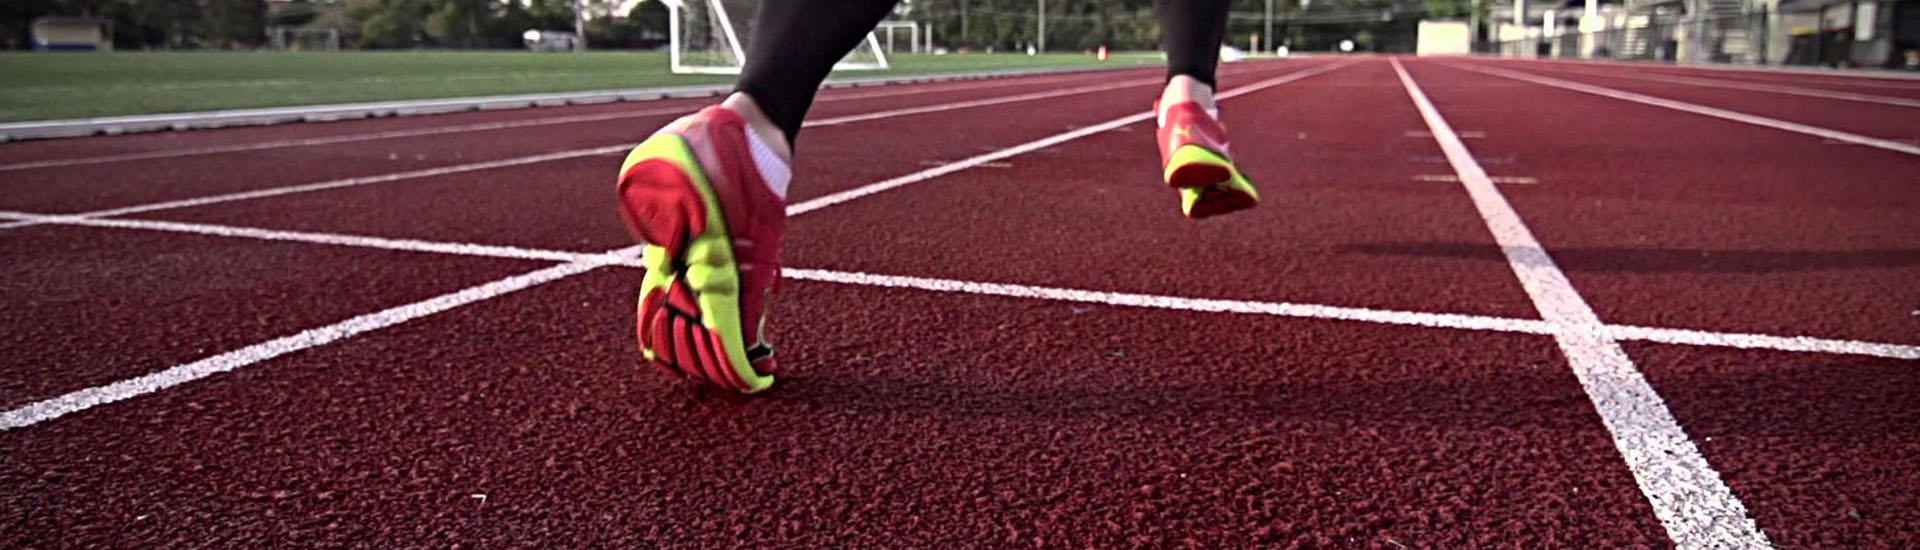 Athletic Track PU Floor Covering Systems, Synthetic Sports Flooring, Running Track Flooring, Flooring for Sports and Multipurpose Halls